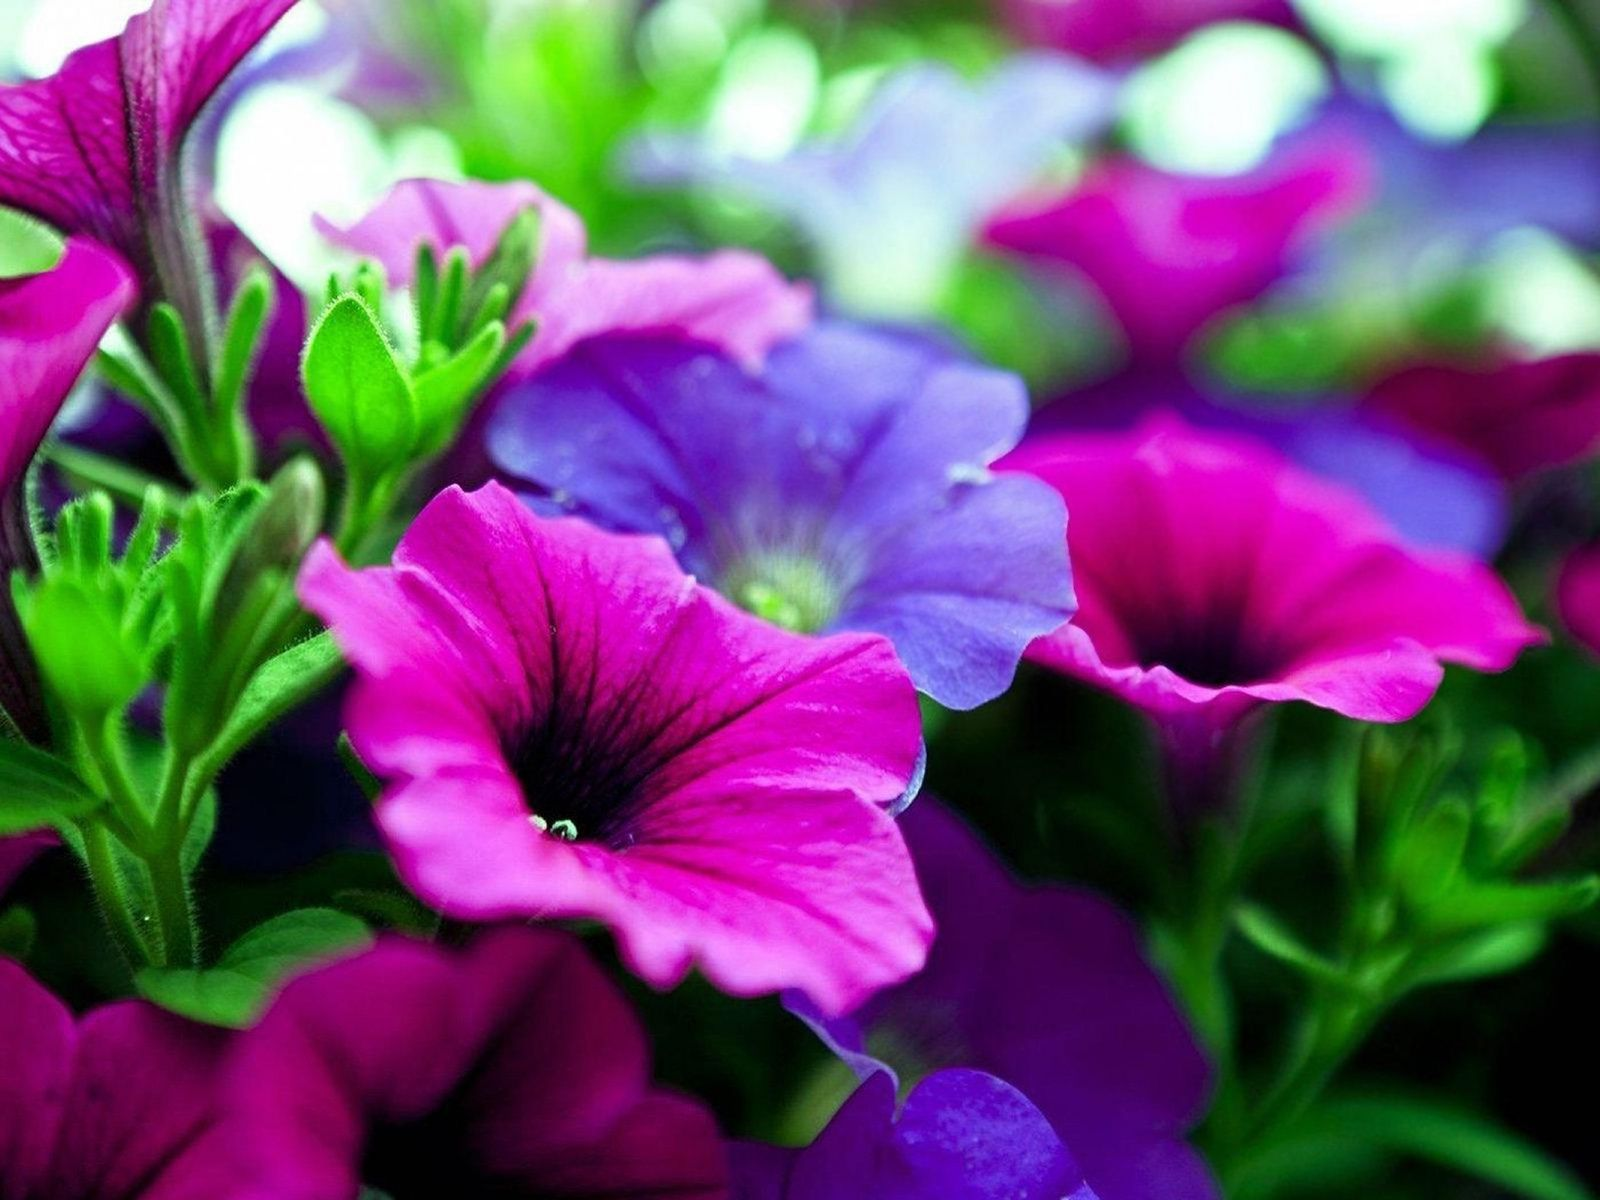 Pink Purple Flowers Wallpaper To Do Pinterest Flower Wallpaper